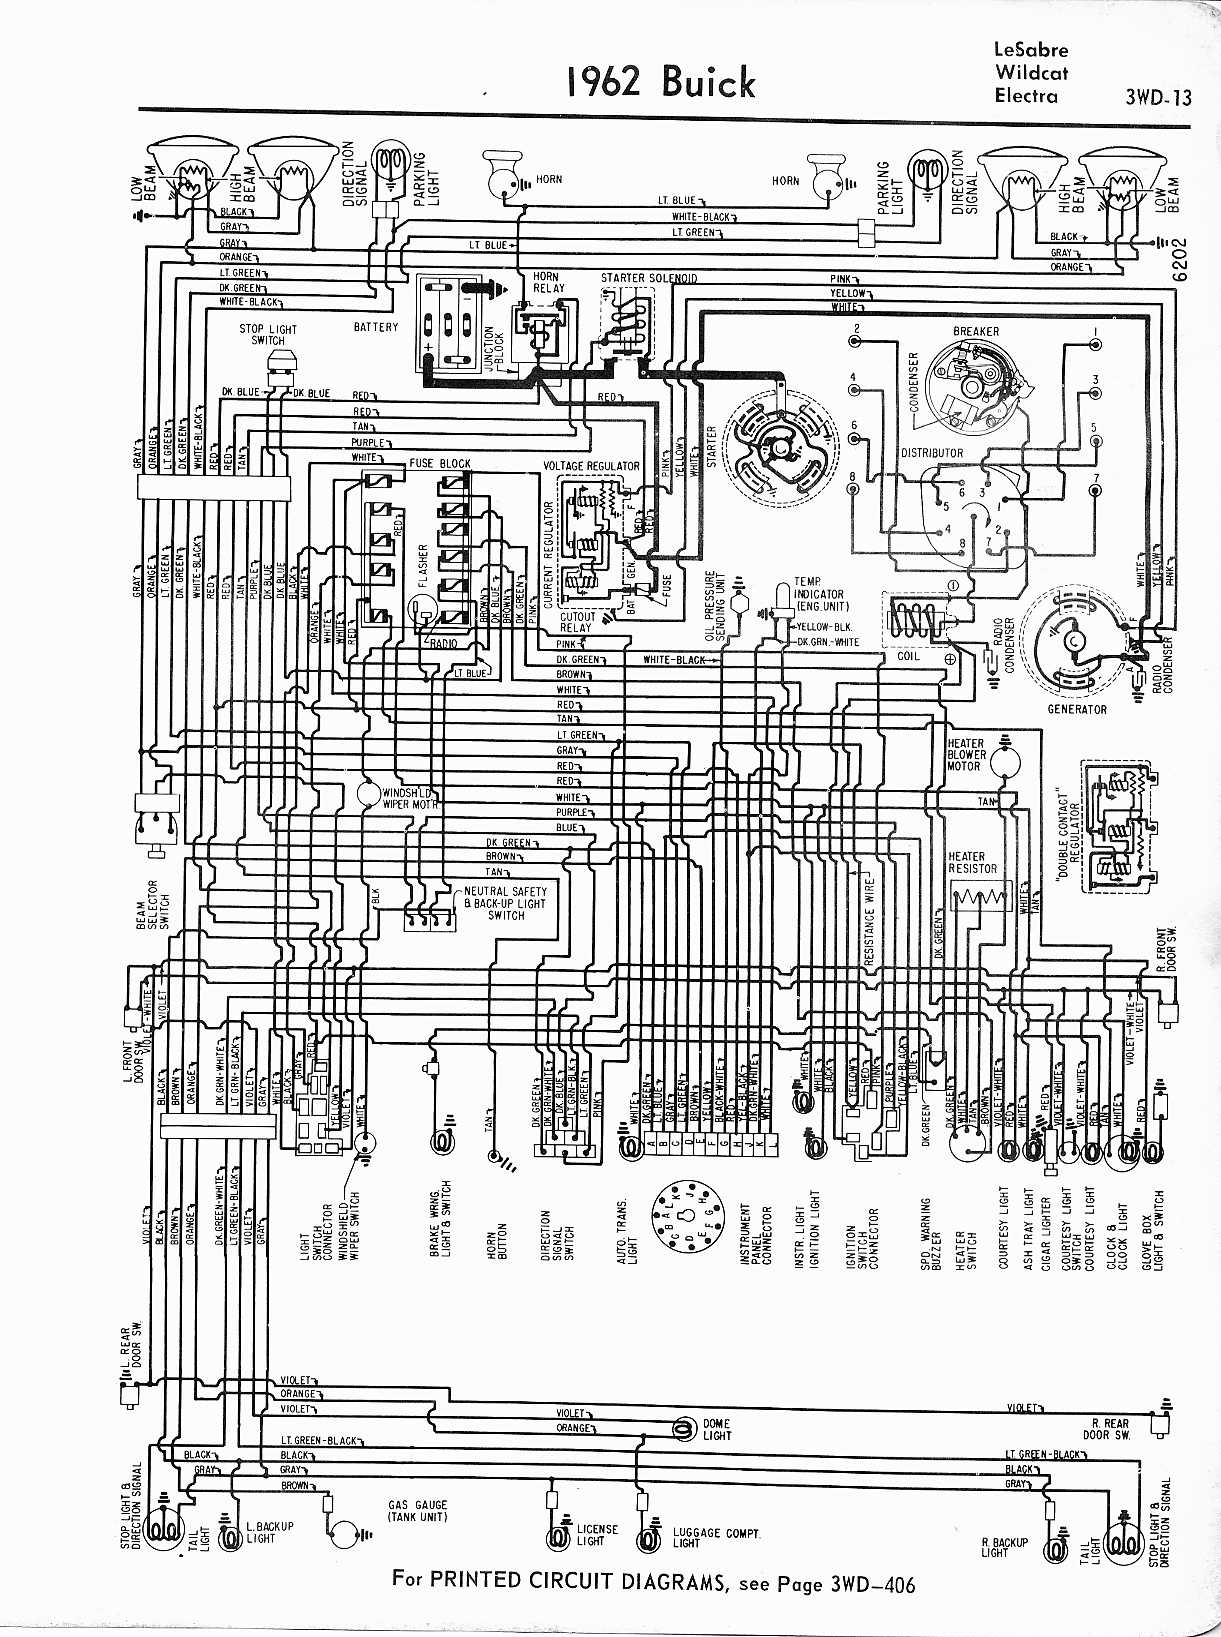 1966 buick riviera wiring diagram simple wiring diagram grand national  charging system buick wiring diagrams 1957